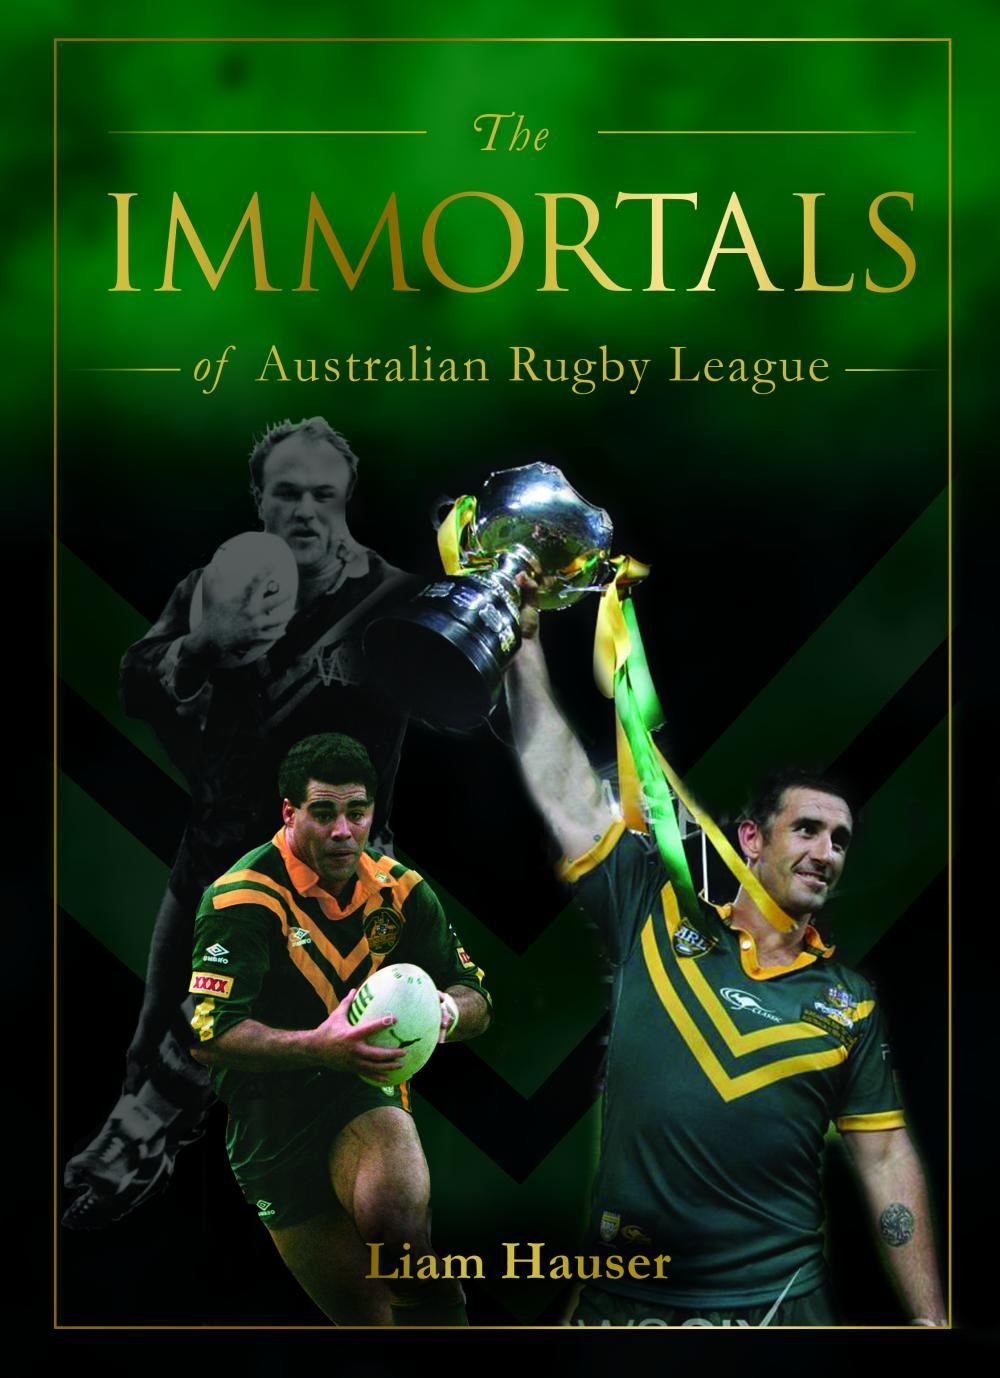 The Immortals of Australian Rugby League